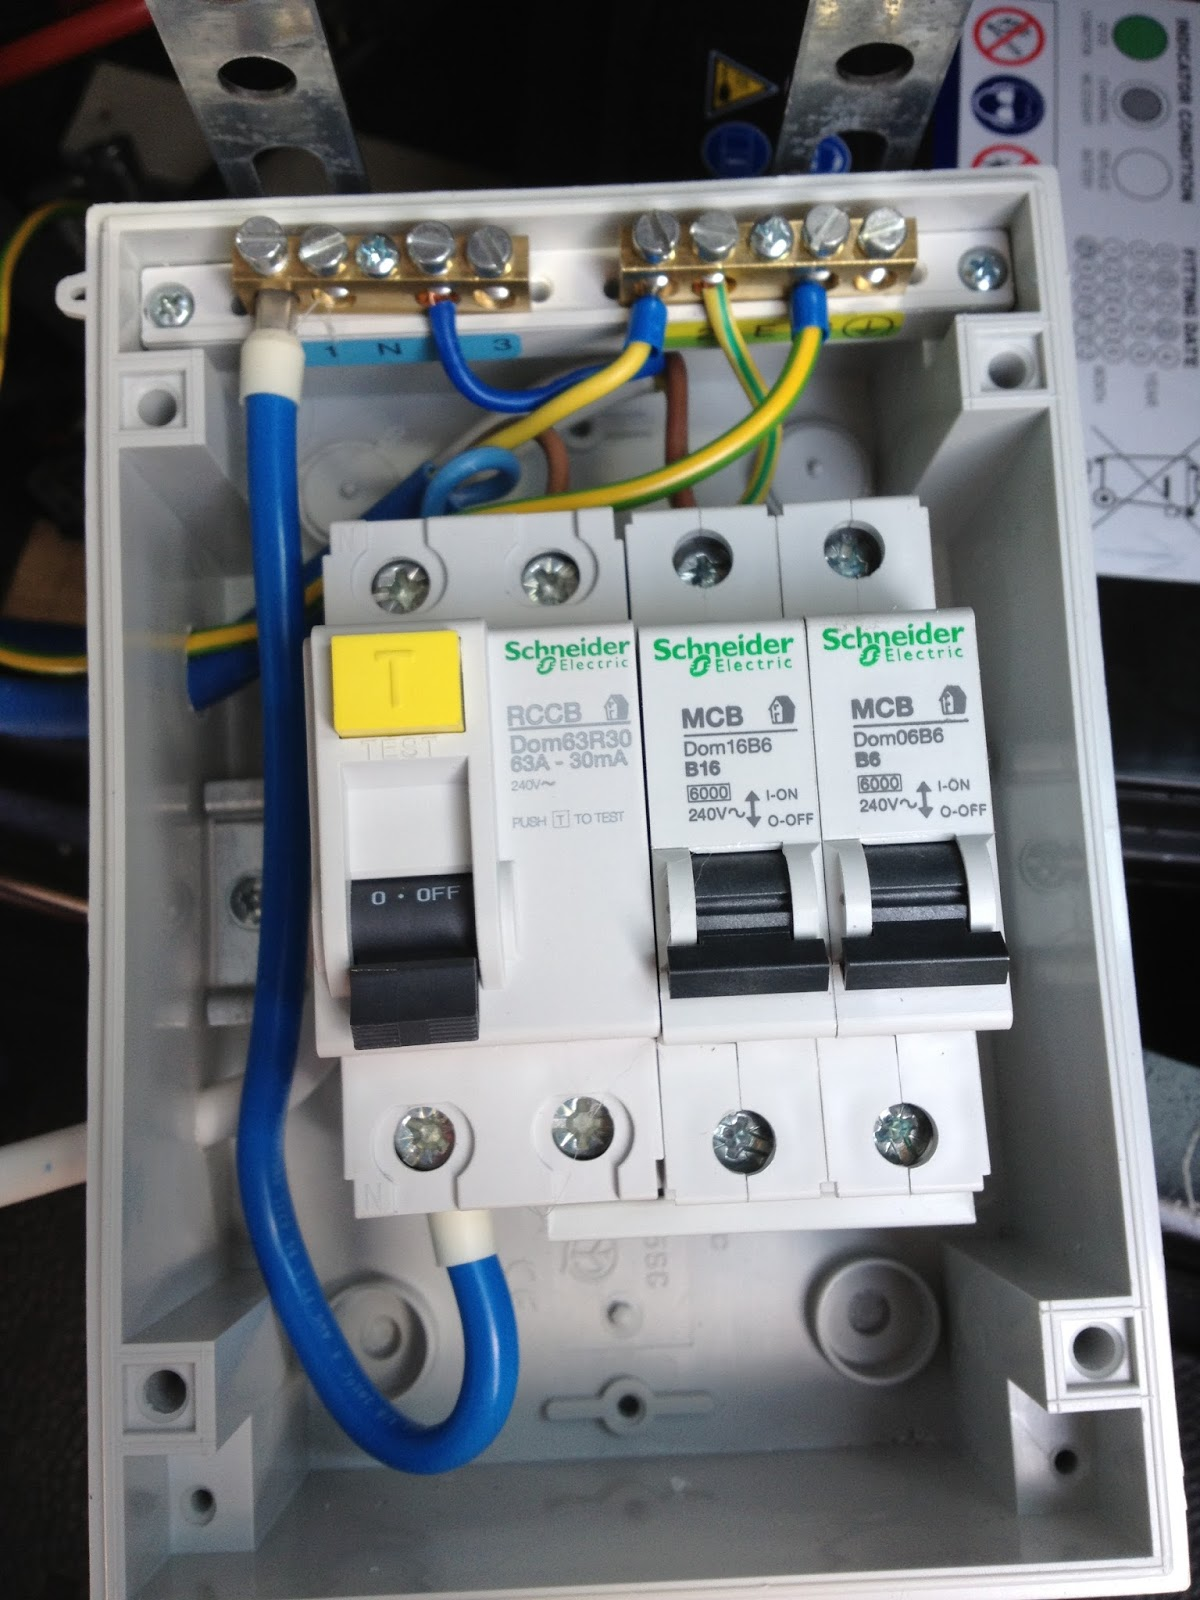 Wiring Diagram For A Shower Rcd : V split charge and mains installation vw t van conversion